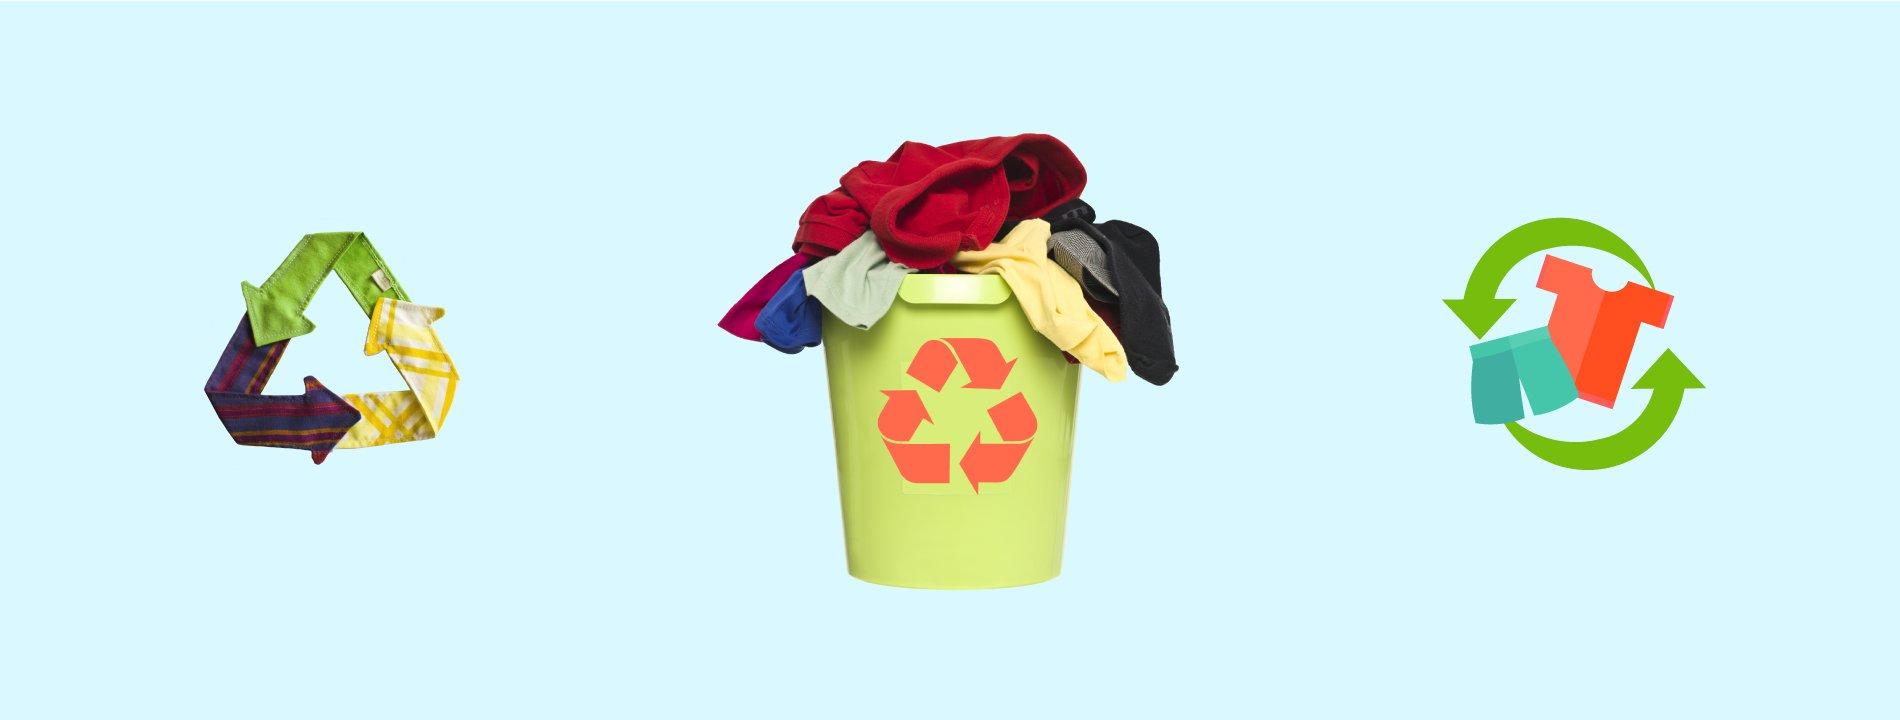 Textile recycling service